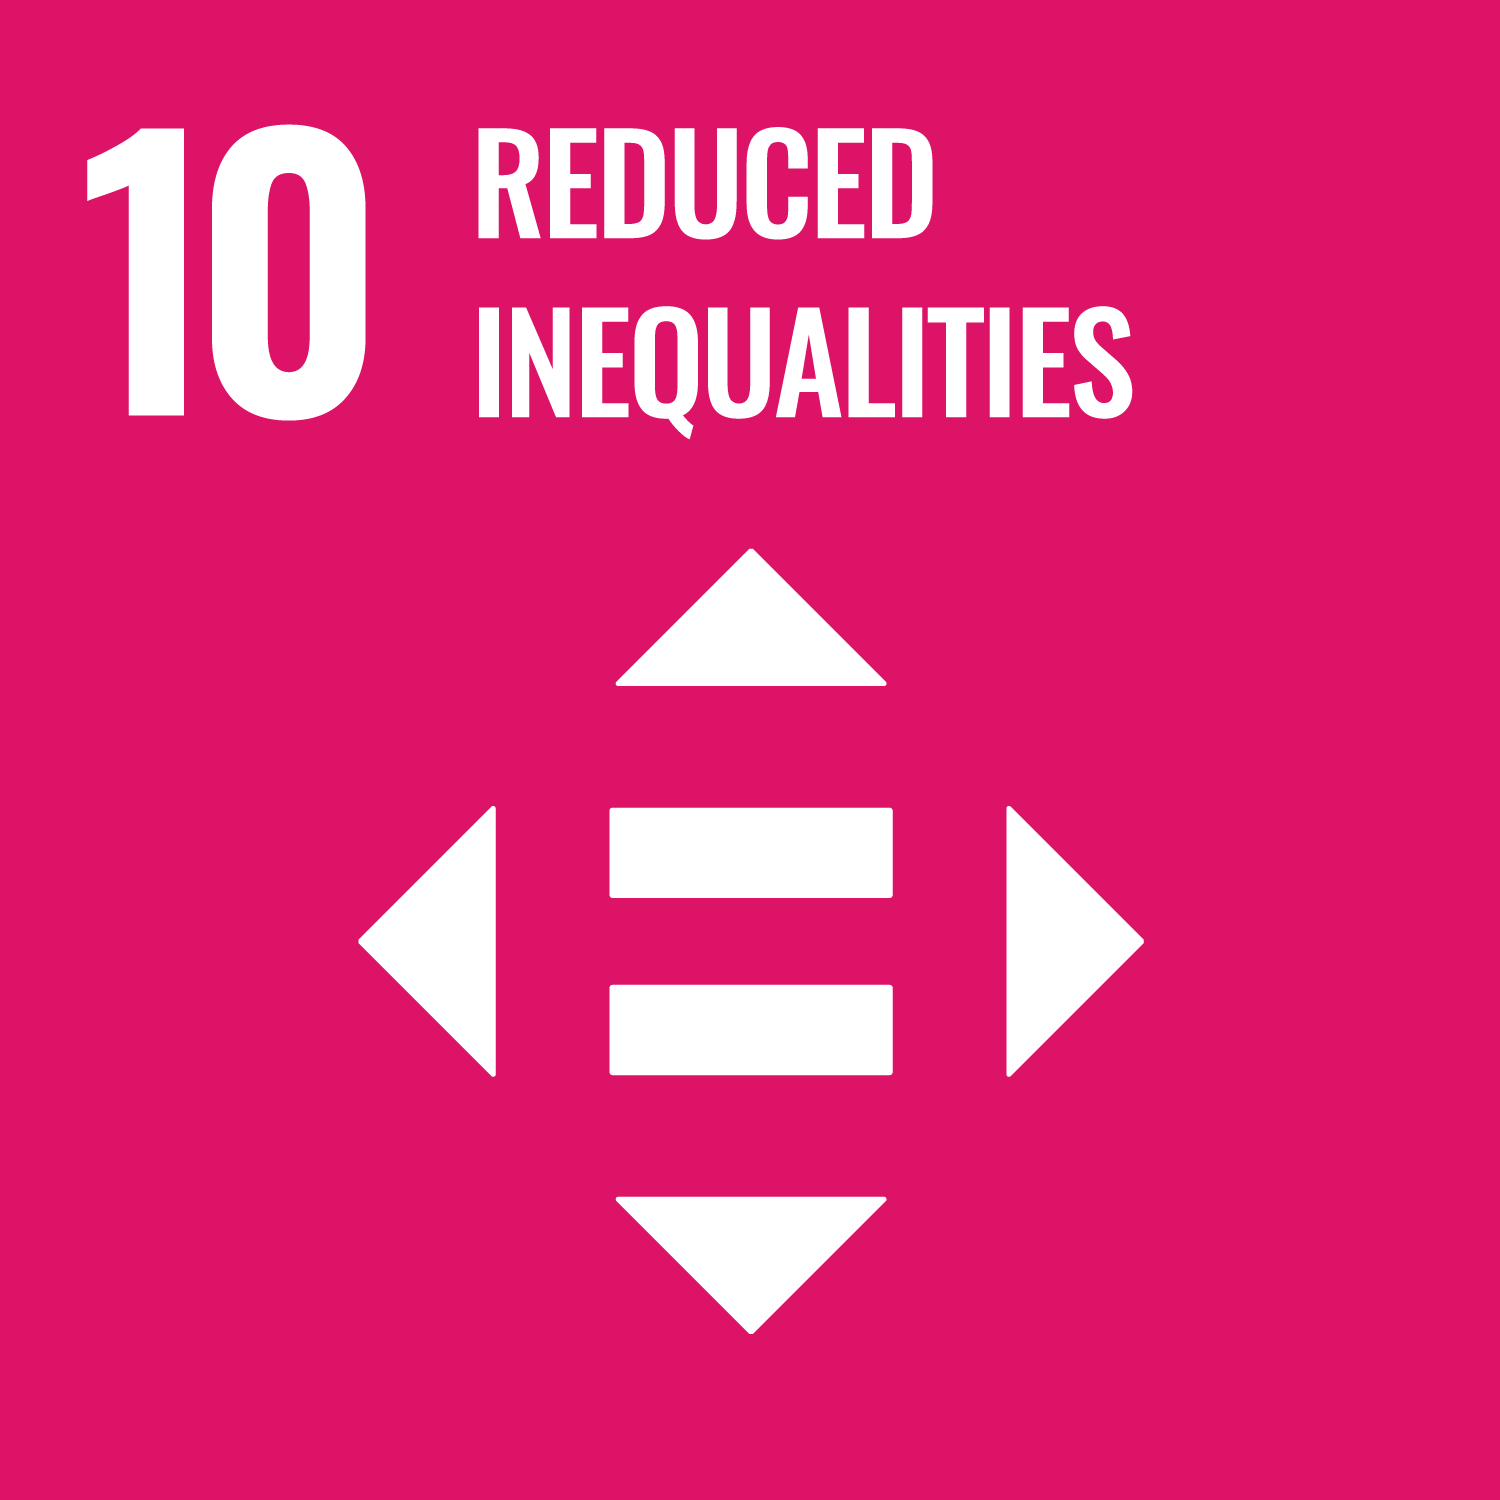 UN Sustainable Development Goal 10: Reduced Inequalities